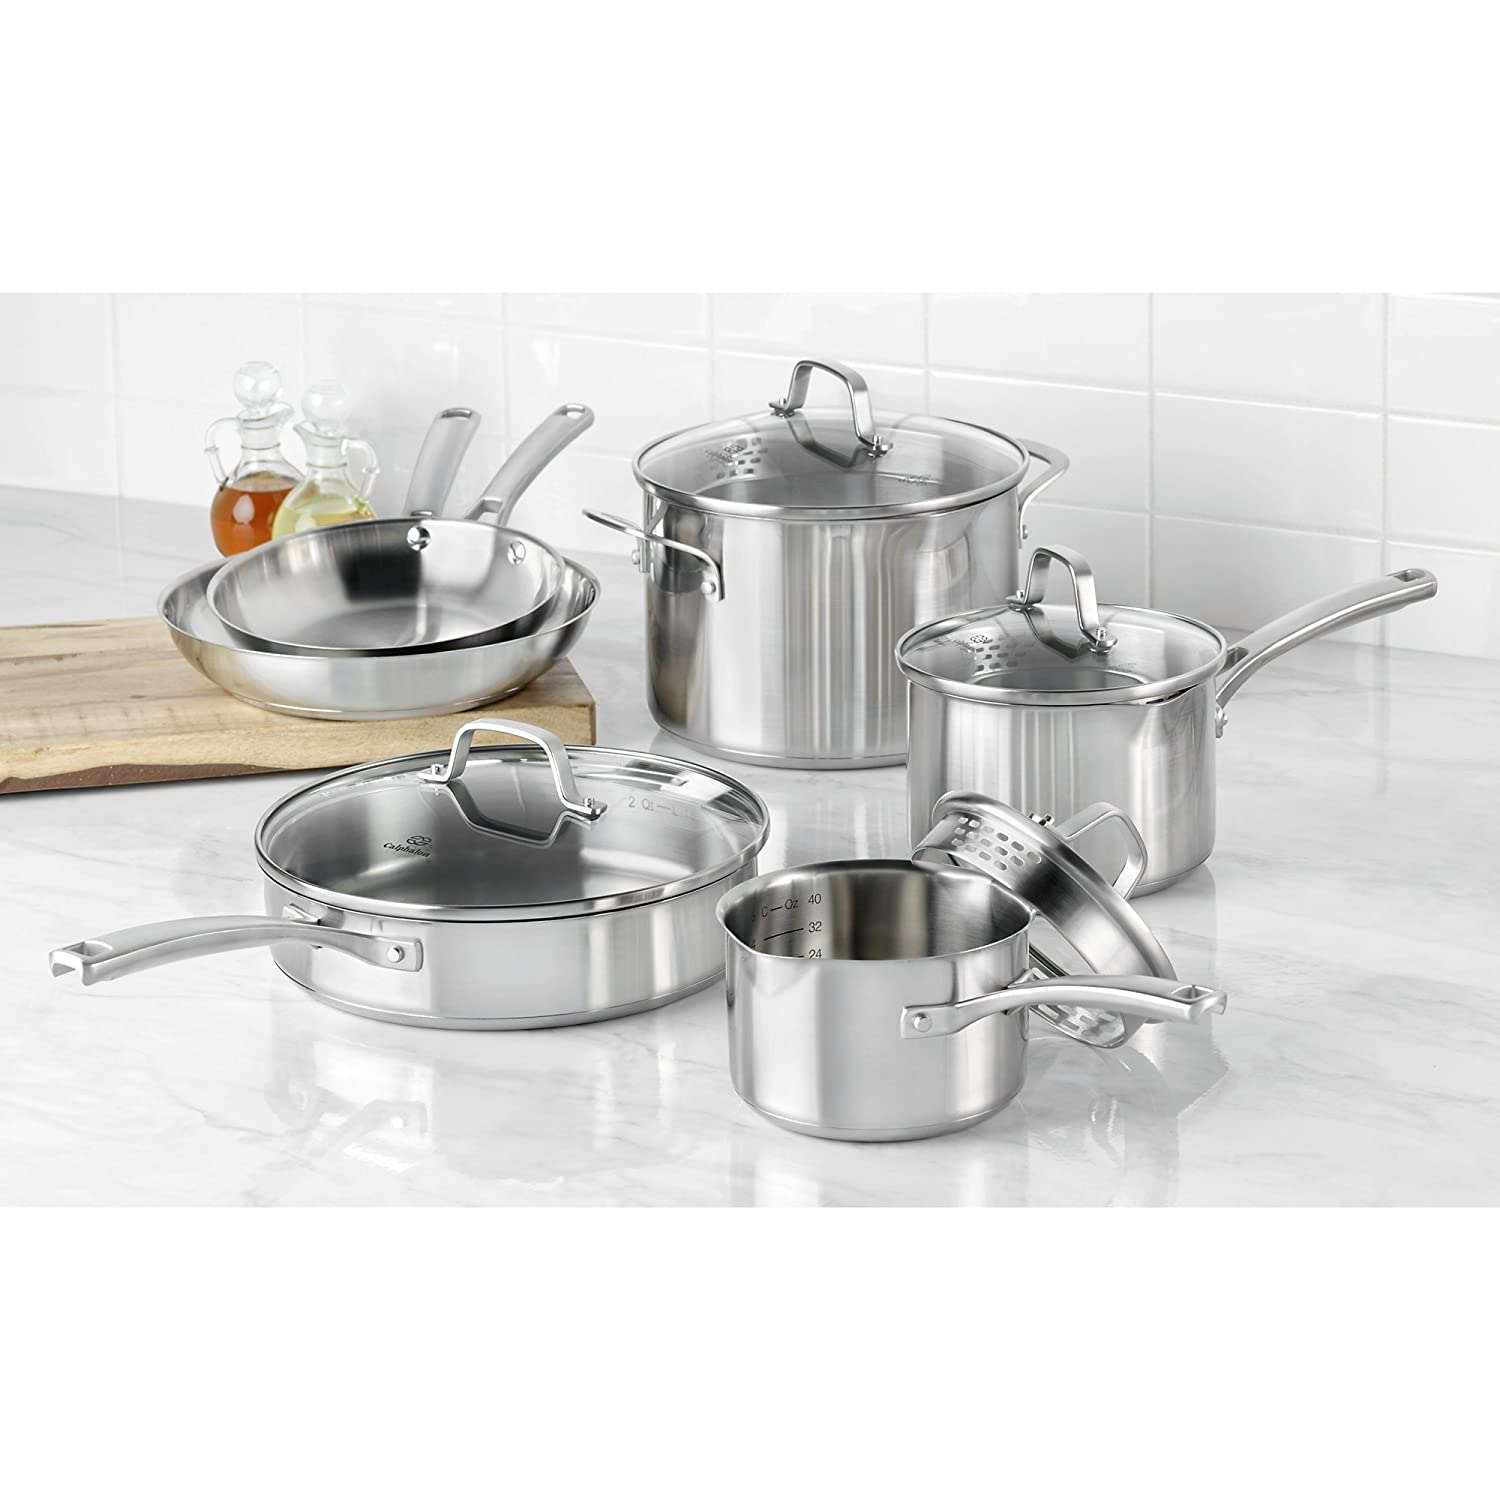 essential-cooking-tools-stainless-steel-pots-set